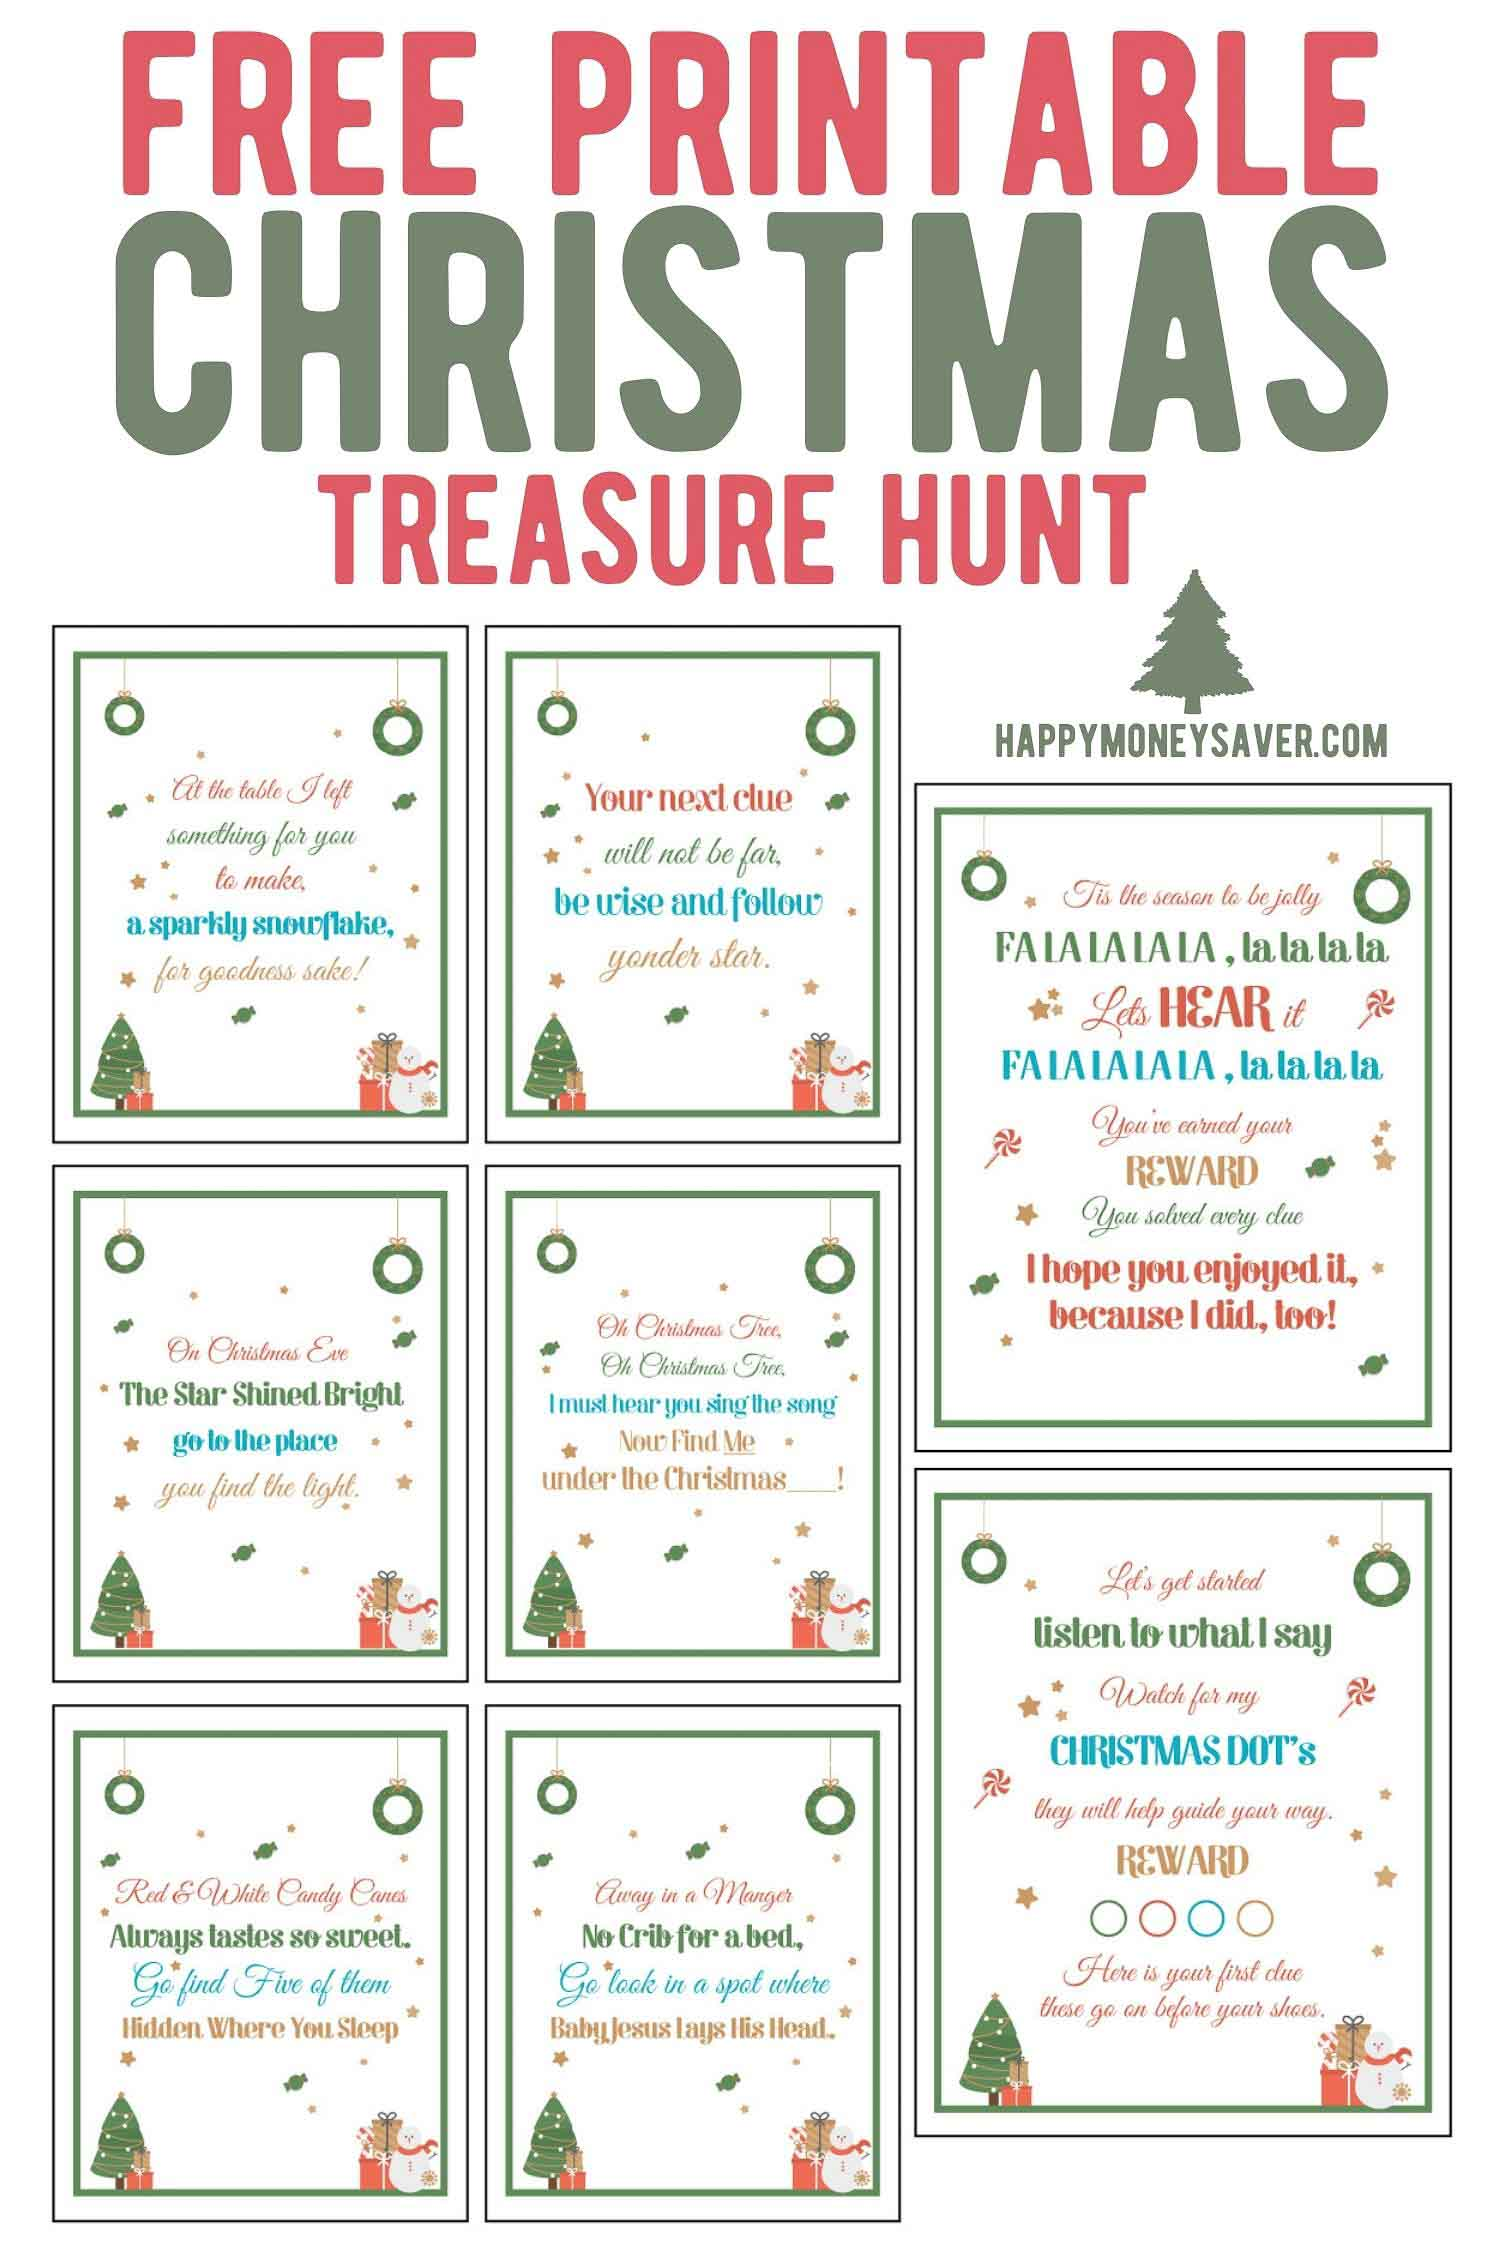 A picture of the free printable Christmas treasure hunt and all the clue cards.